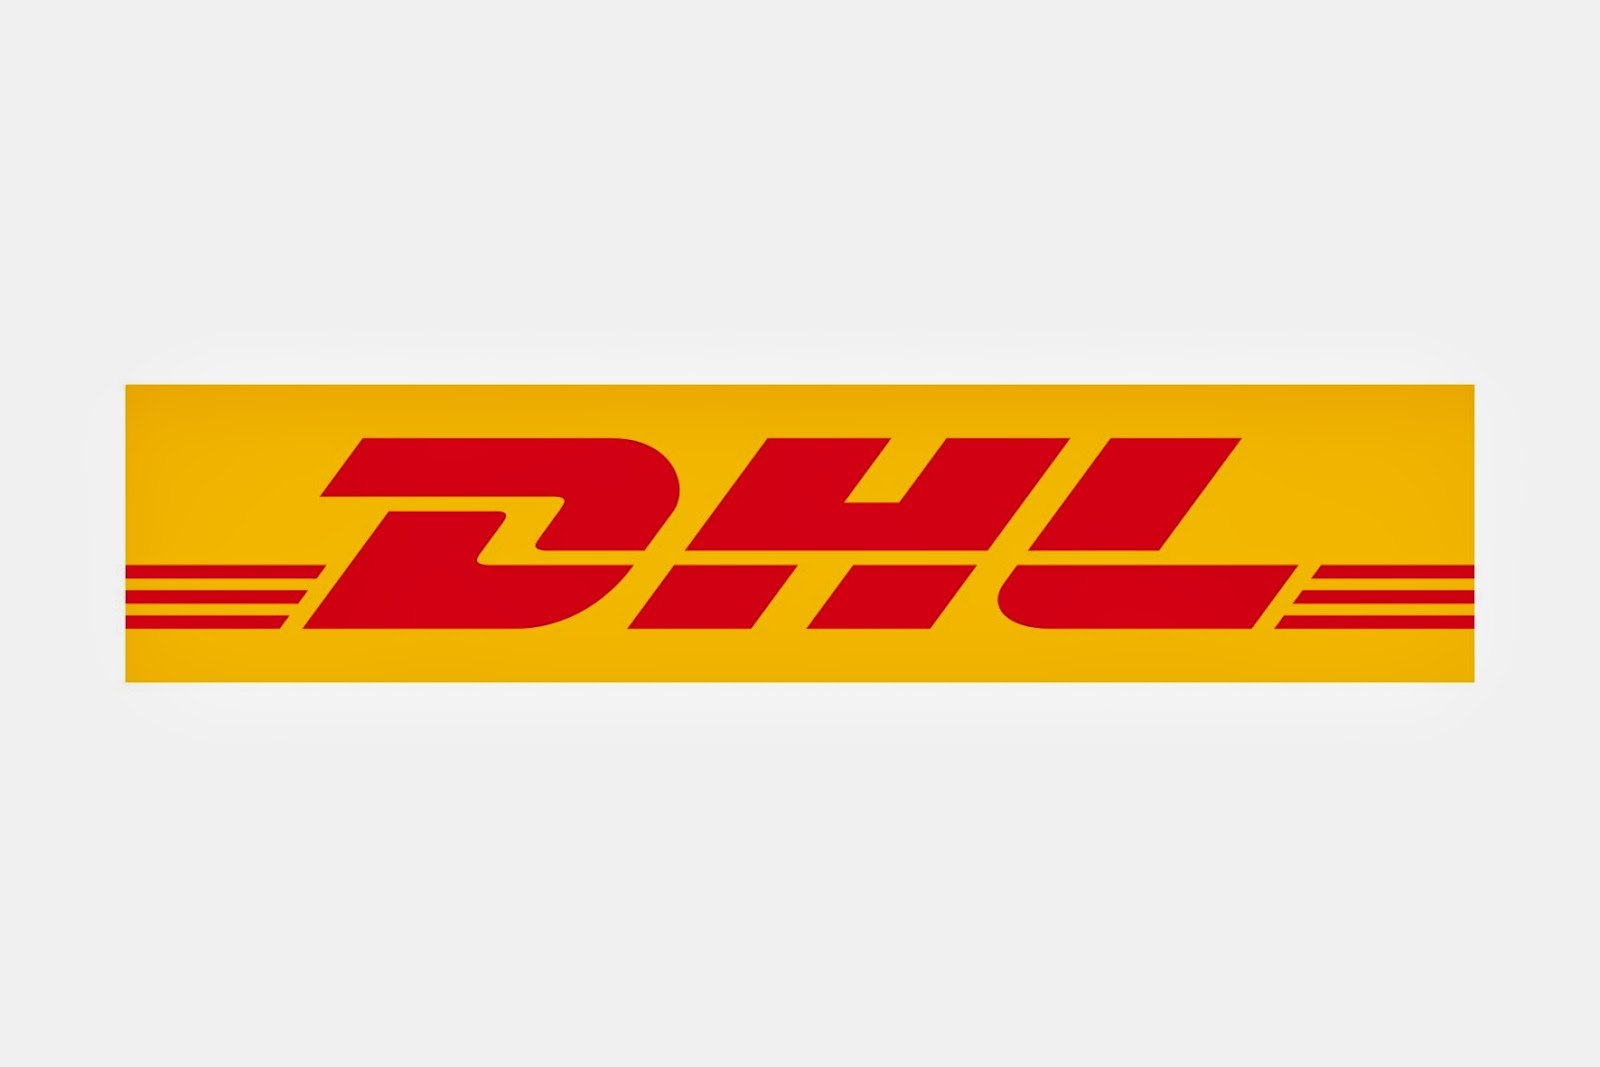 Fujitsu and DHL Team Up to Bring IoT to the Supply Chain